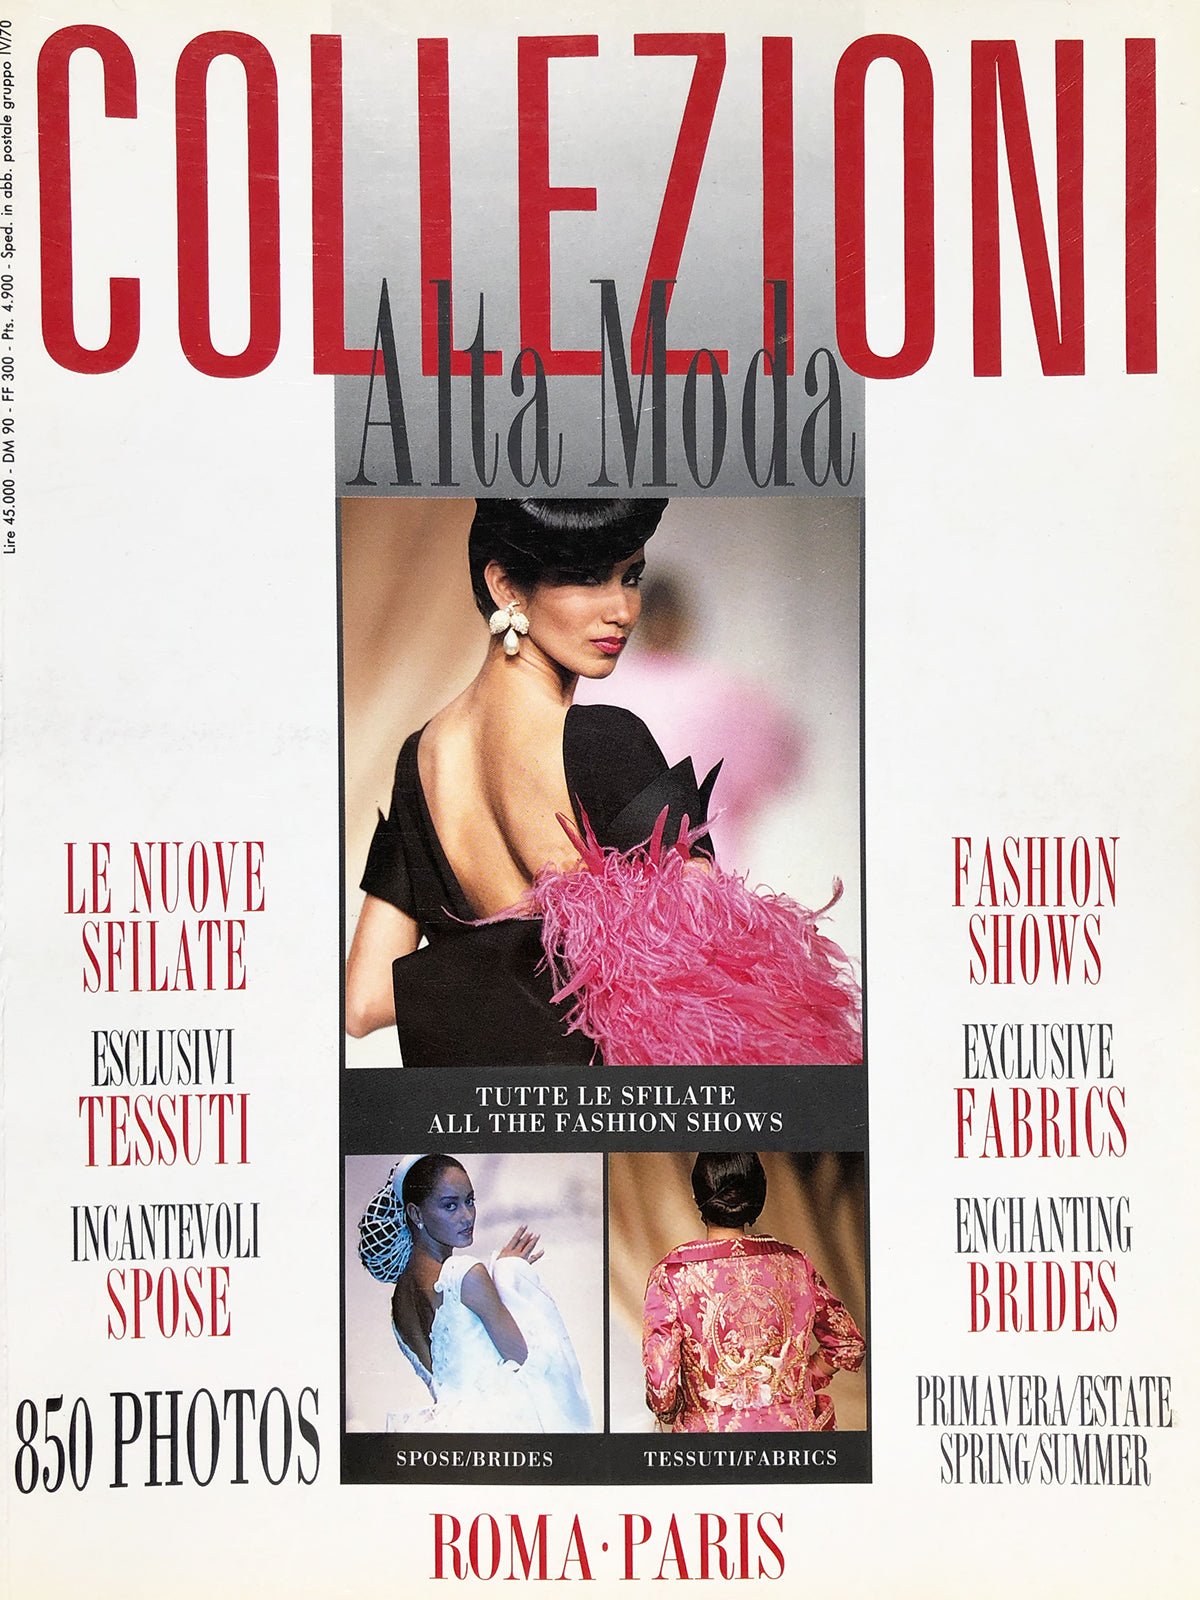 Archived - Collezioni N. 21 Haute Couture Spring/Summer 1991